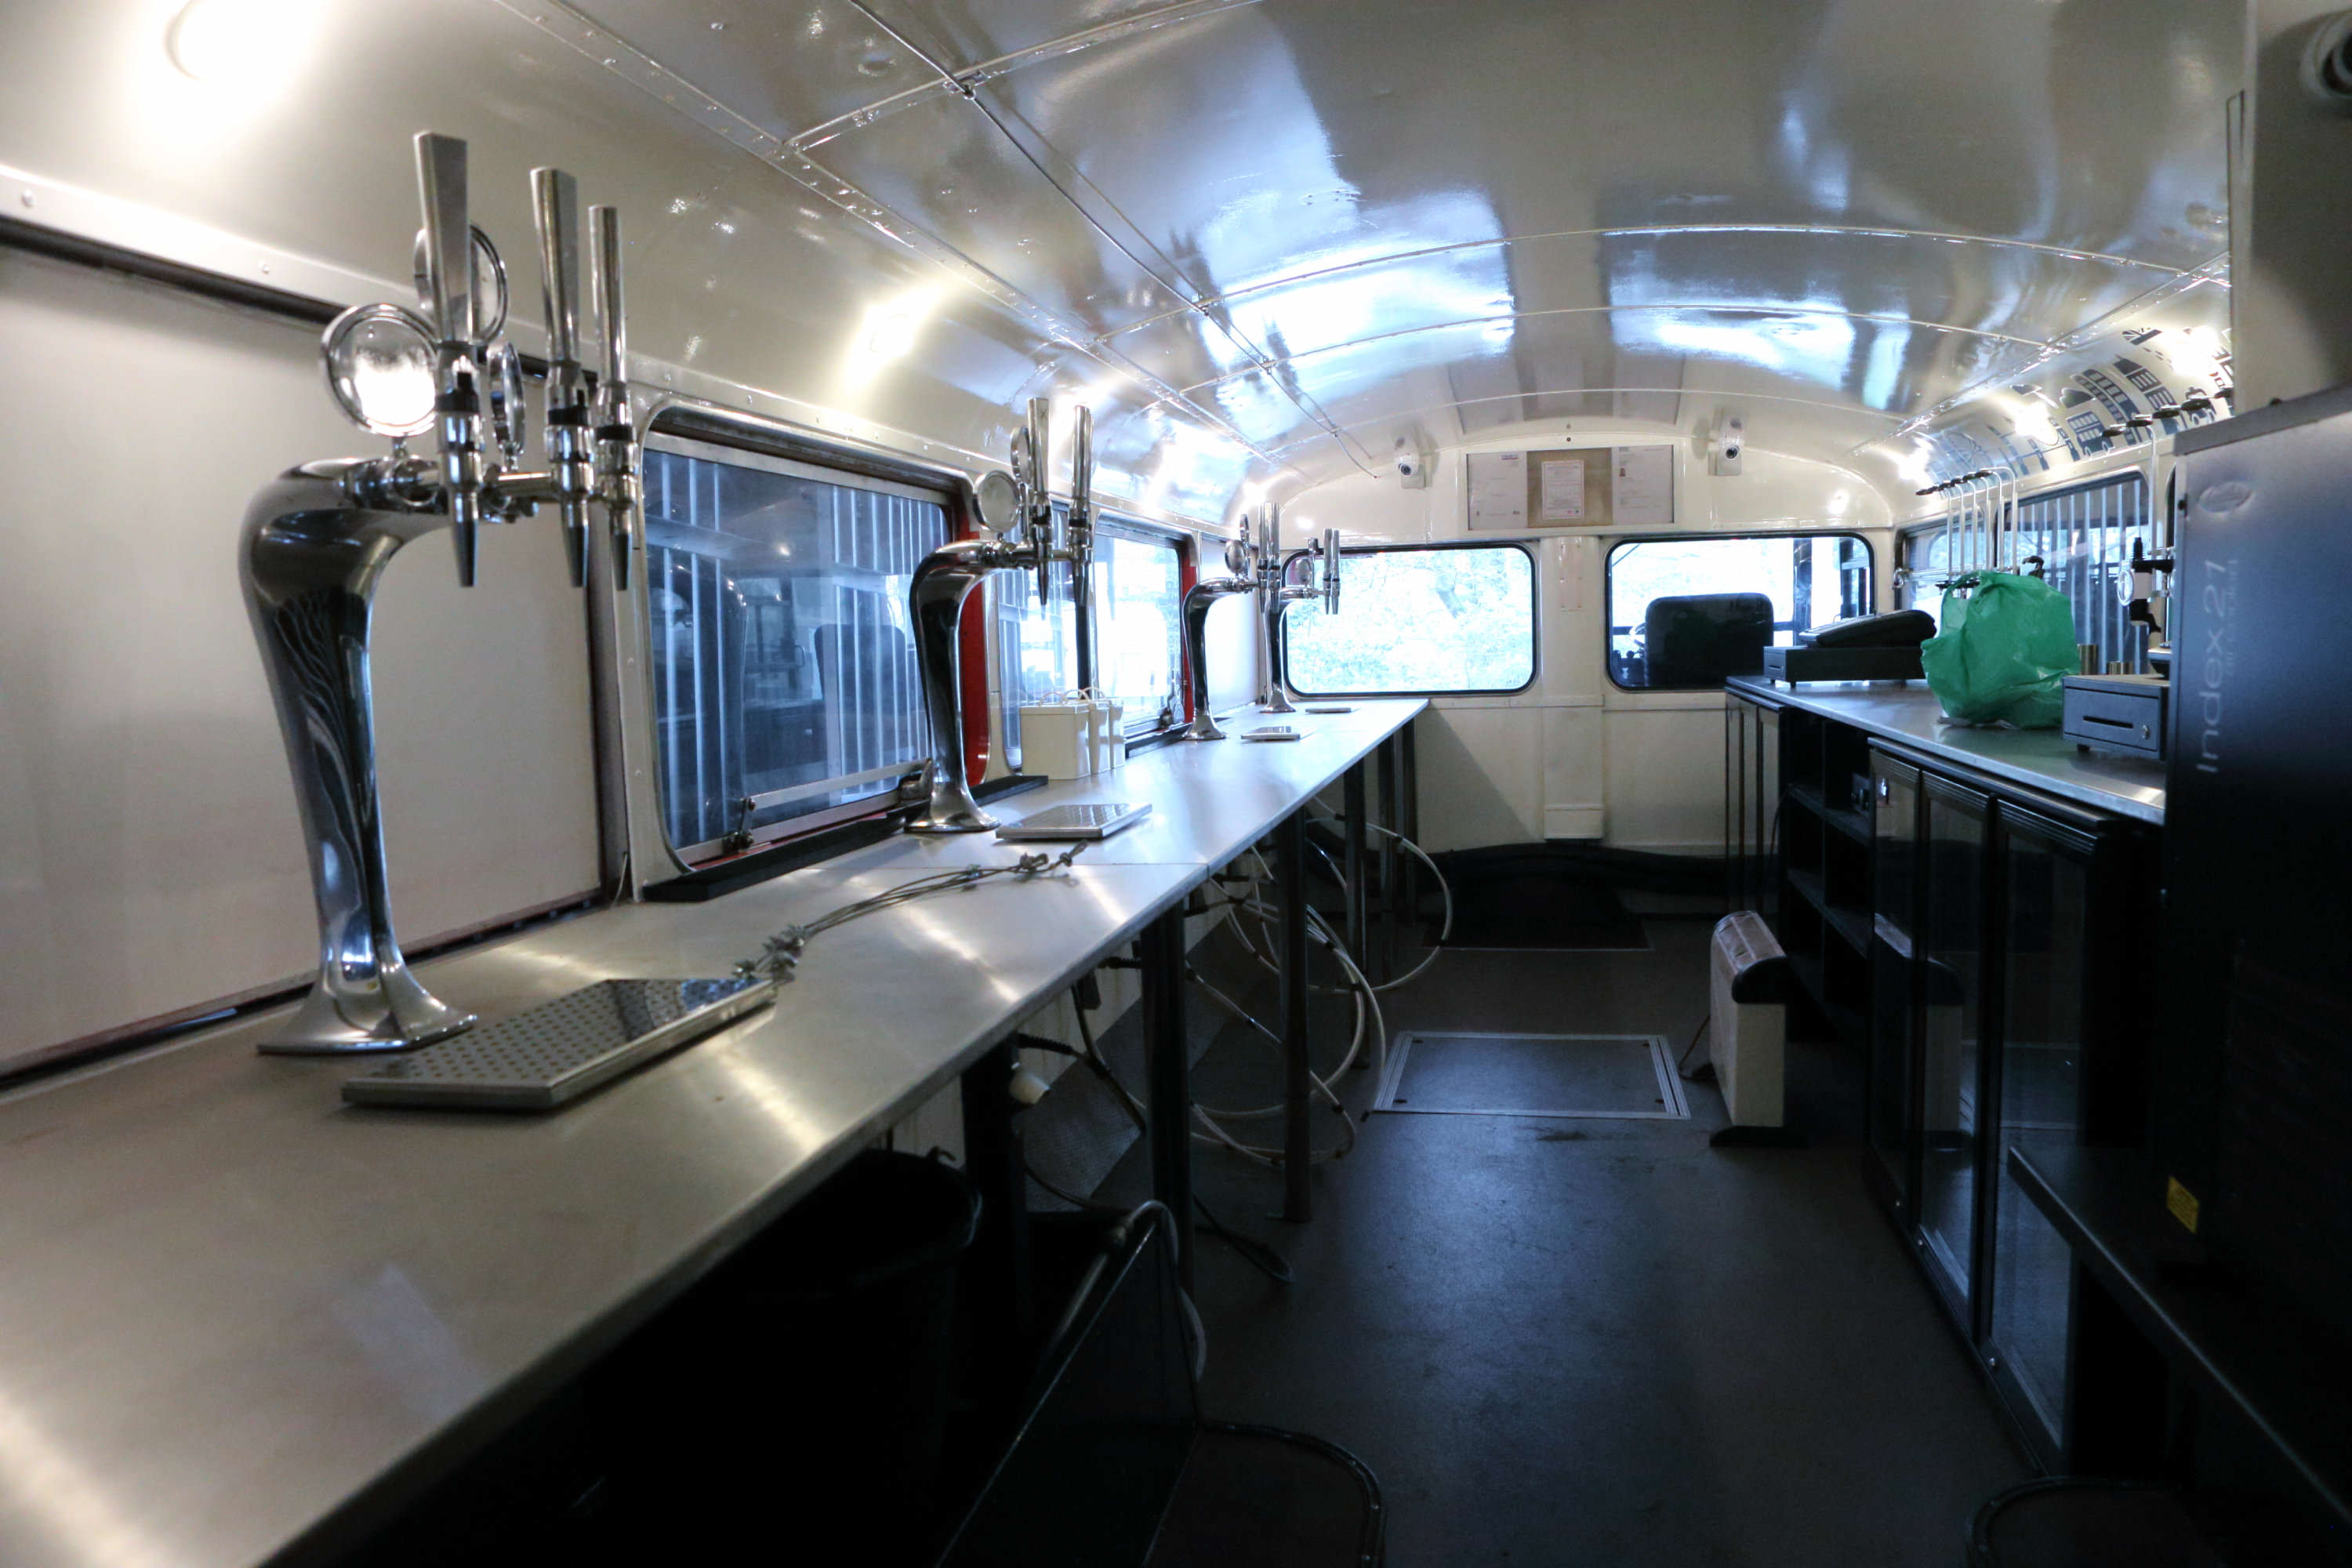 Guy Turns Bus Into Movable Pub And It Looks Incredible SWNS PARTY BUS 14